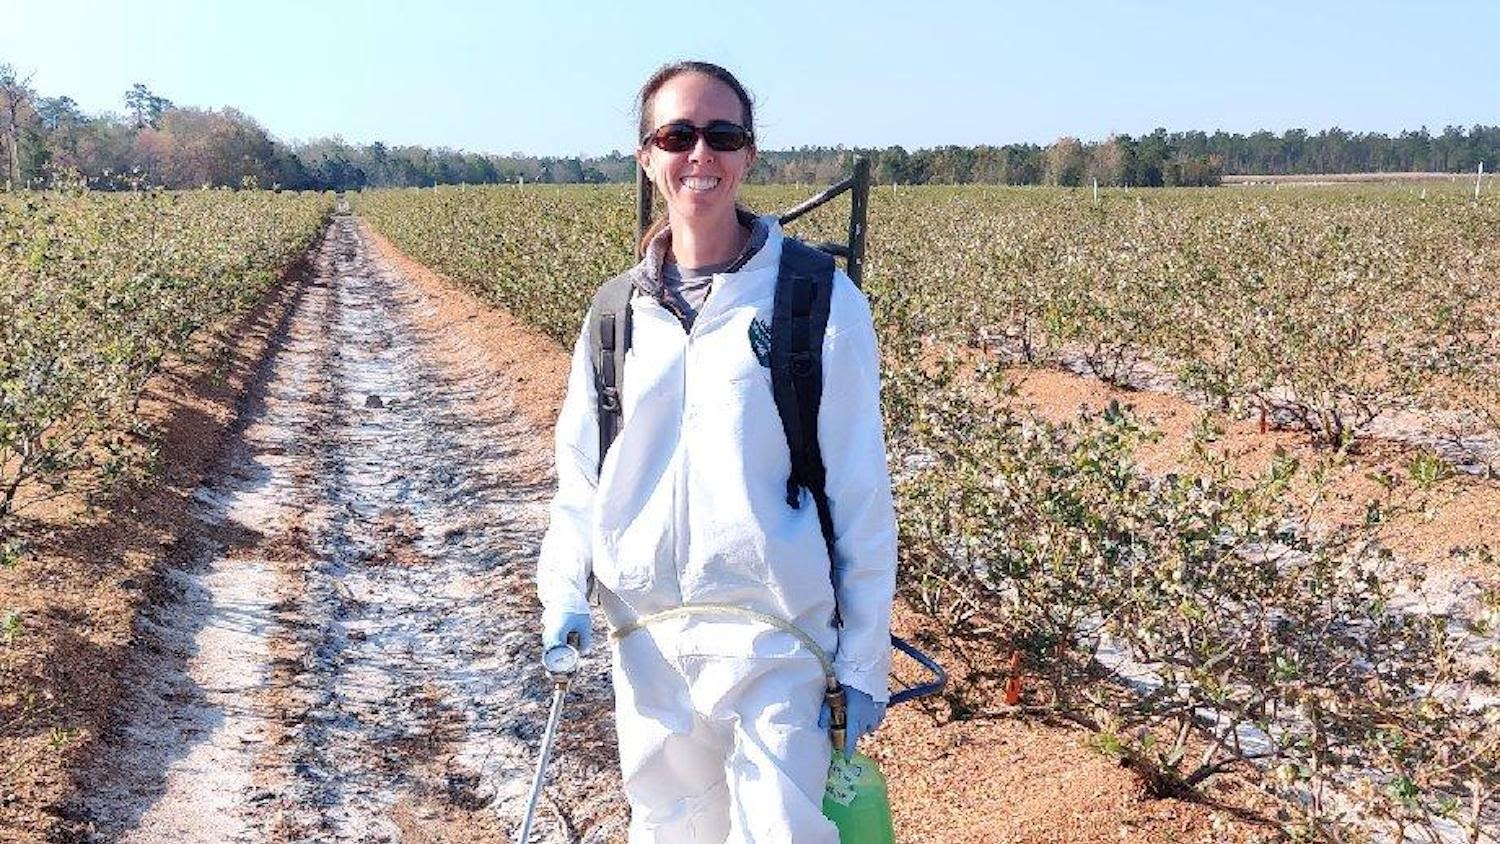 Kira Sims treating a strawberry field with herbicides